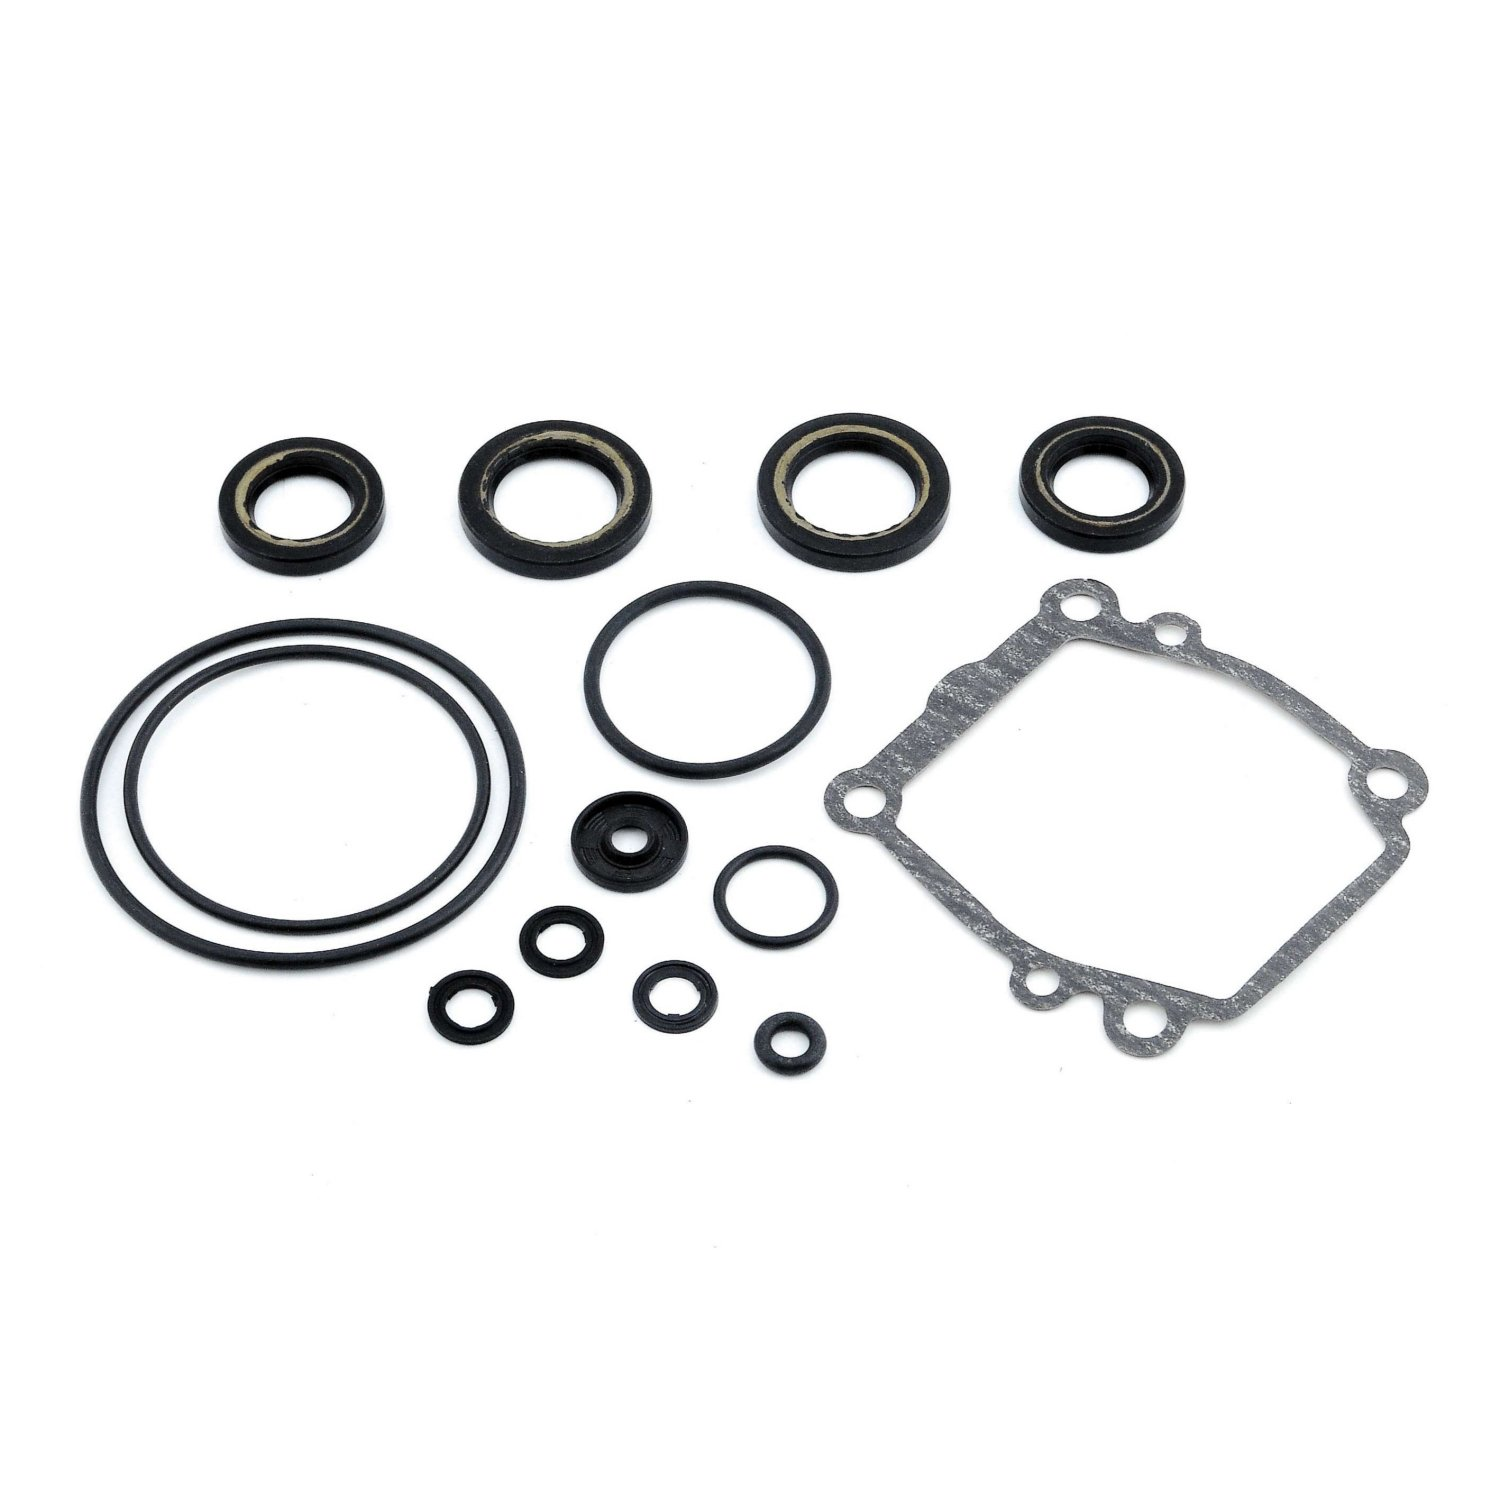 Sierra 18-74108 Gear Housing Seal Kit